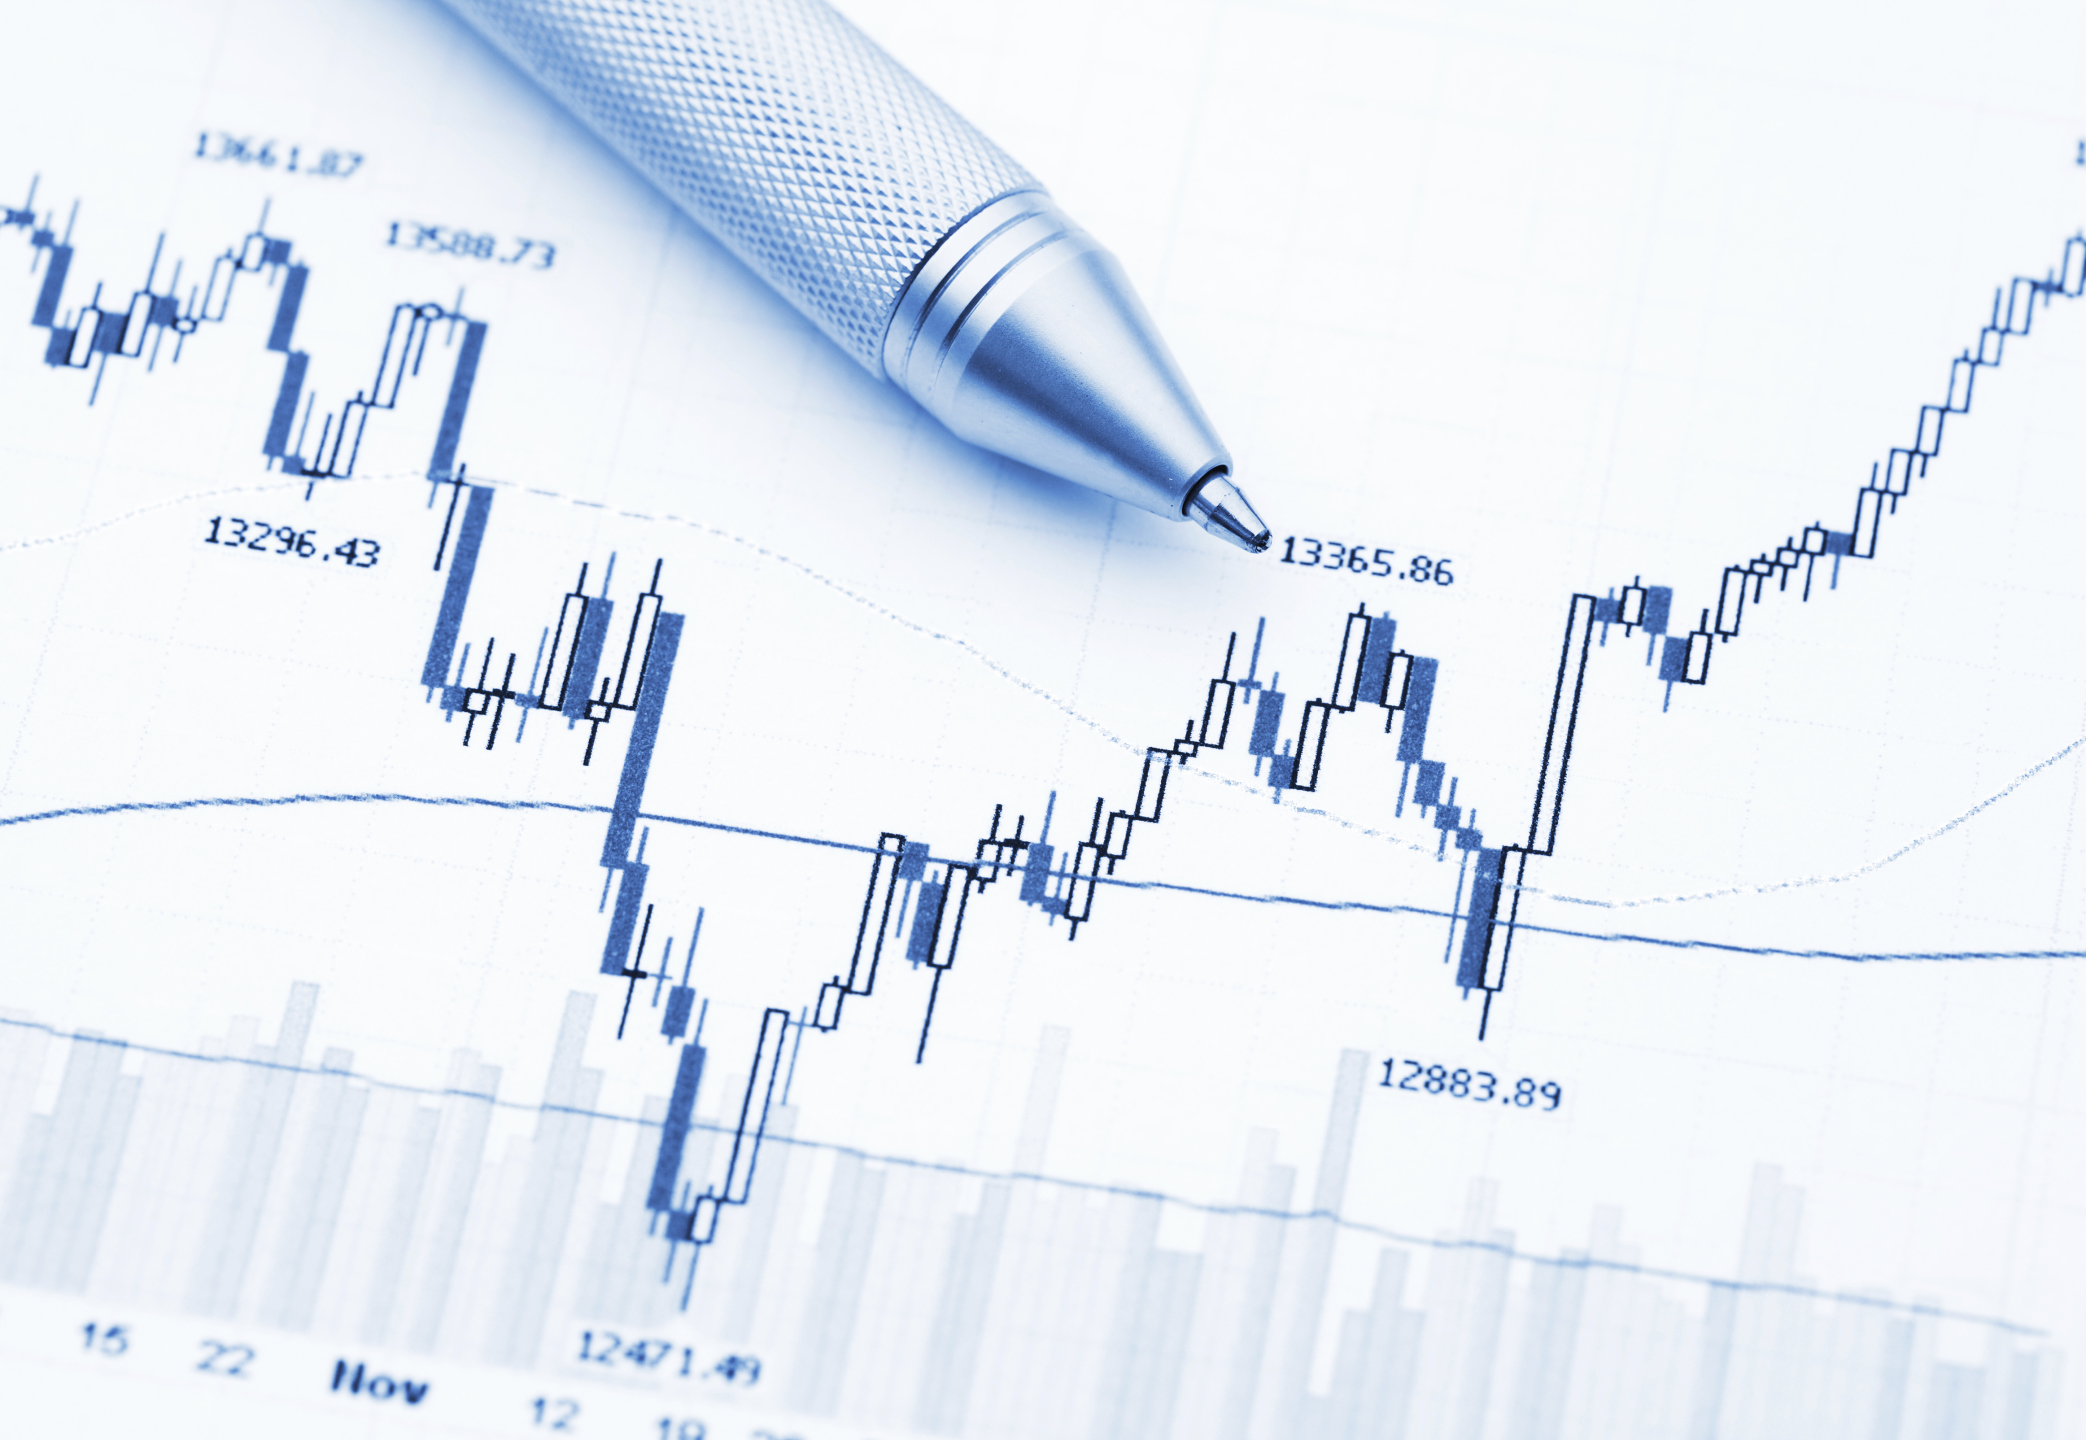 Available binary trading strategies